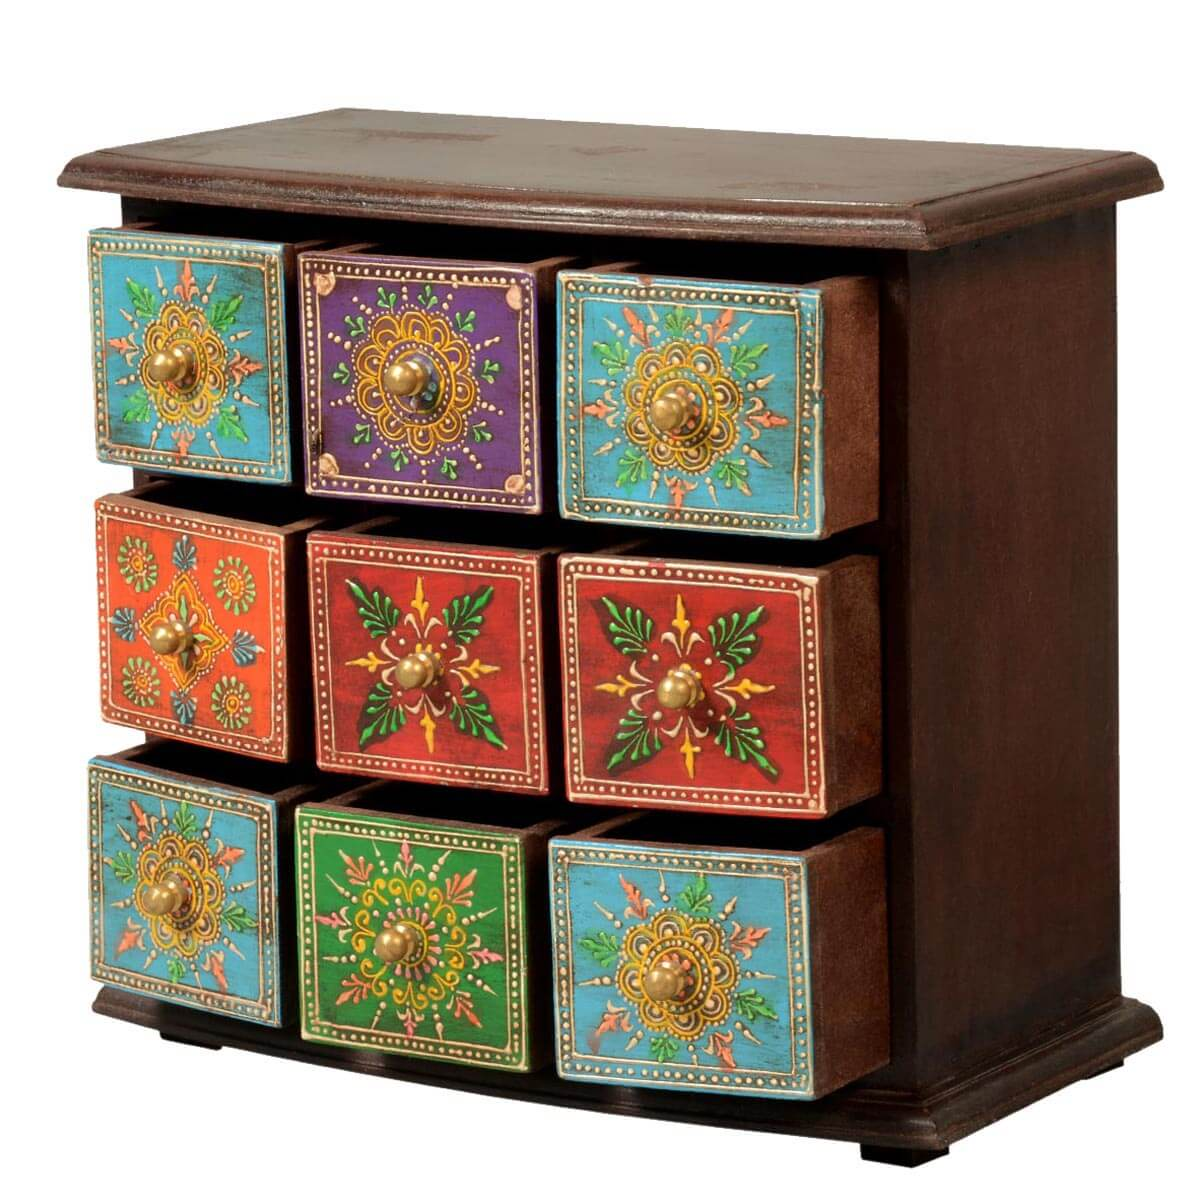 Marvelous photograph of  Furniture Pidgeon Hole Mango Wood 9 Drawer Hand Painted Jewelry Chest with #B27F19 color and 1200x1200 pixels